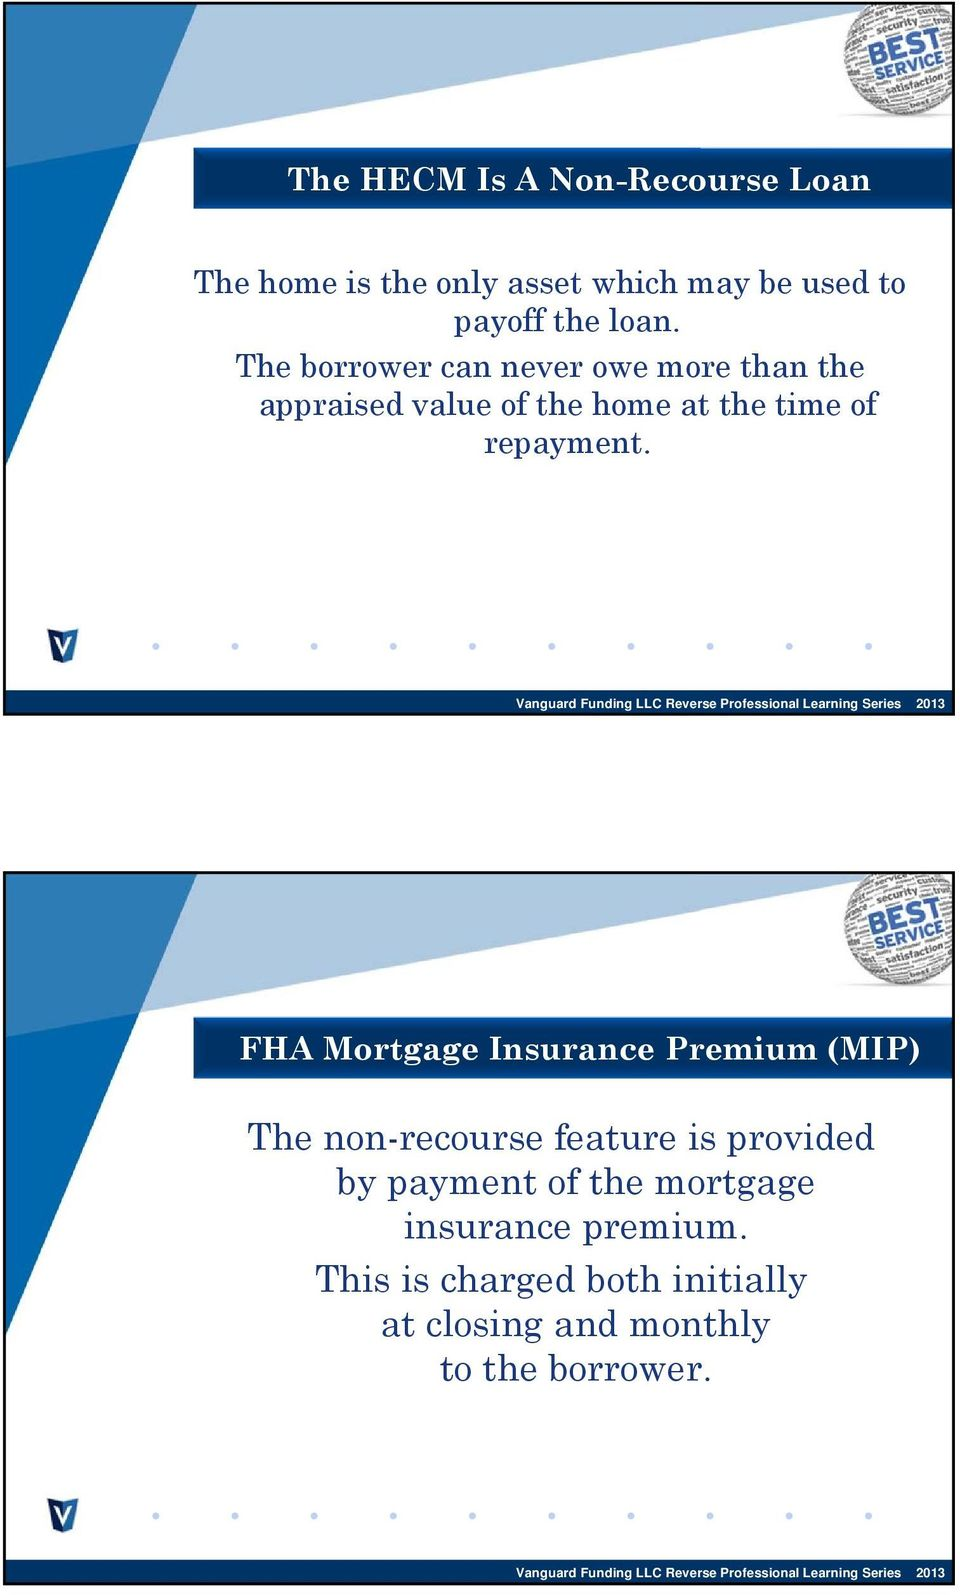 FHA Mortgage Insurance Premium (MIP) The non-recourse feature is provided by payment of the